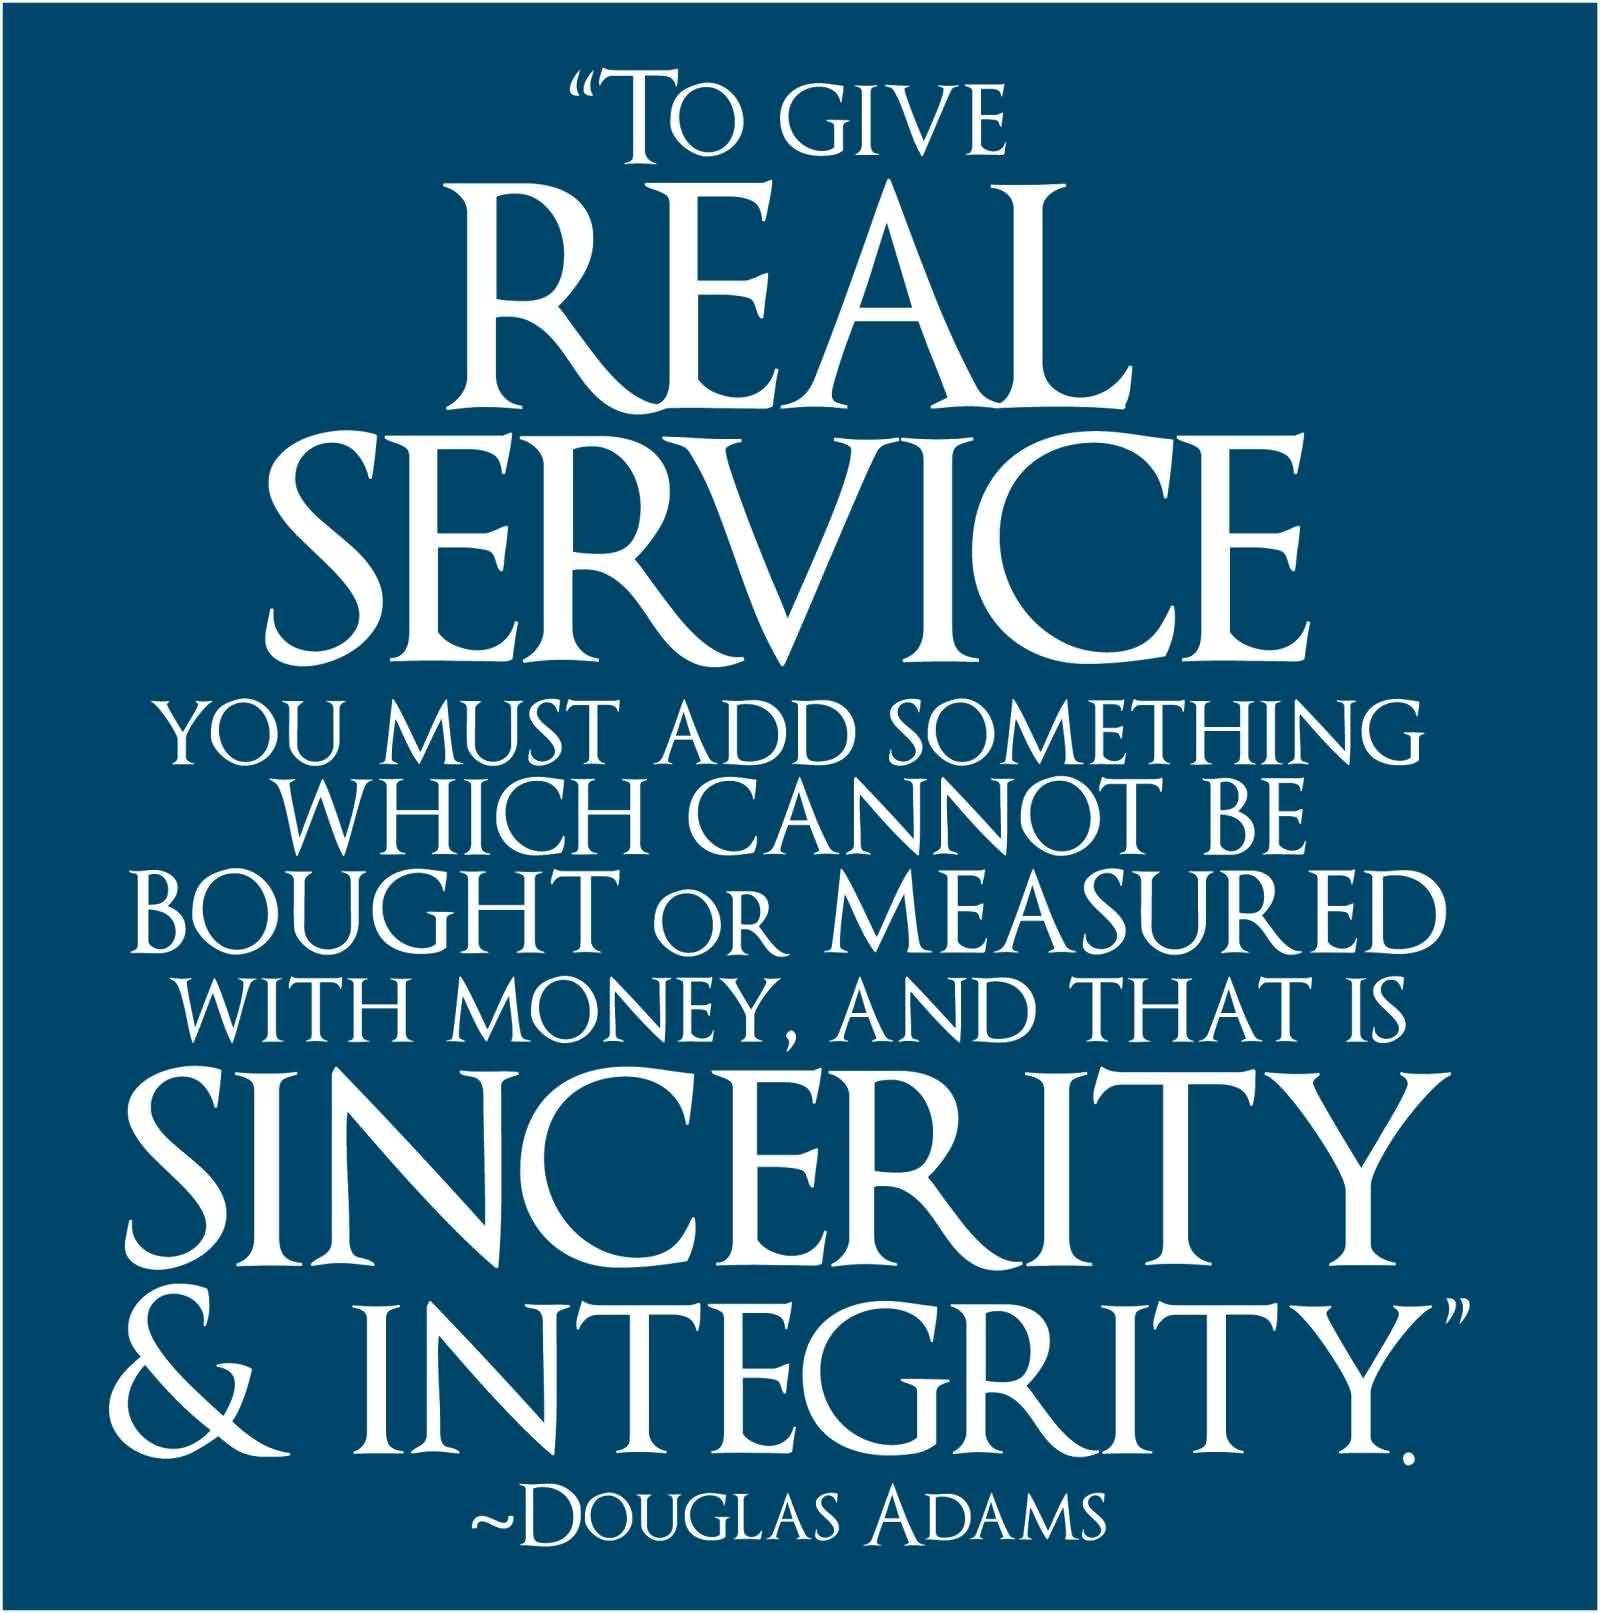 62 Most Beautiful Integrity Quotes And Sayings